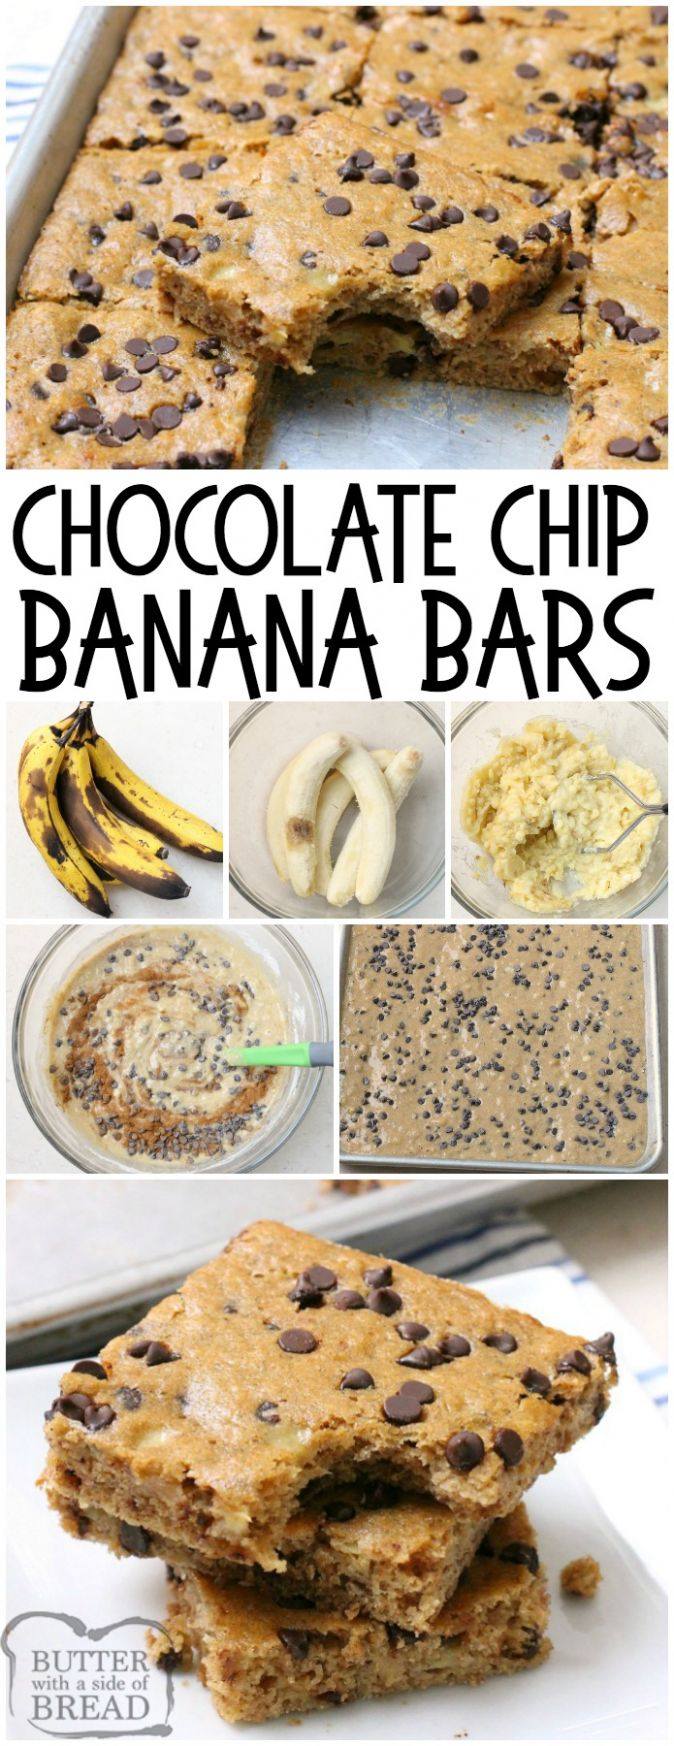 CHOCOLATE CHIP BANANA BARS - Butter with a Side of Bread - Breakfast Recipes Using Bananas